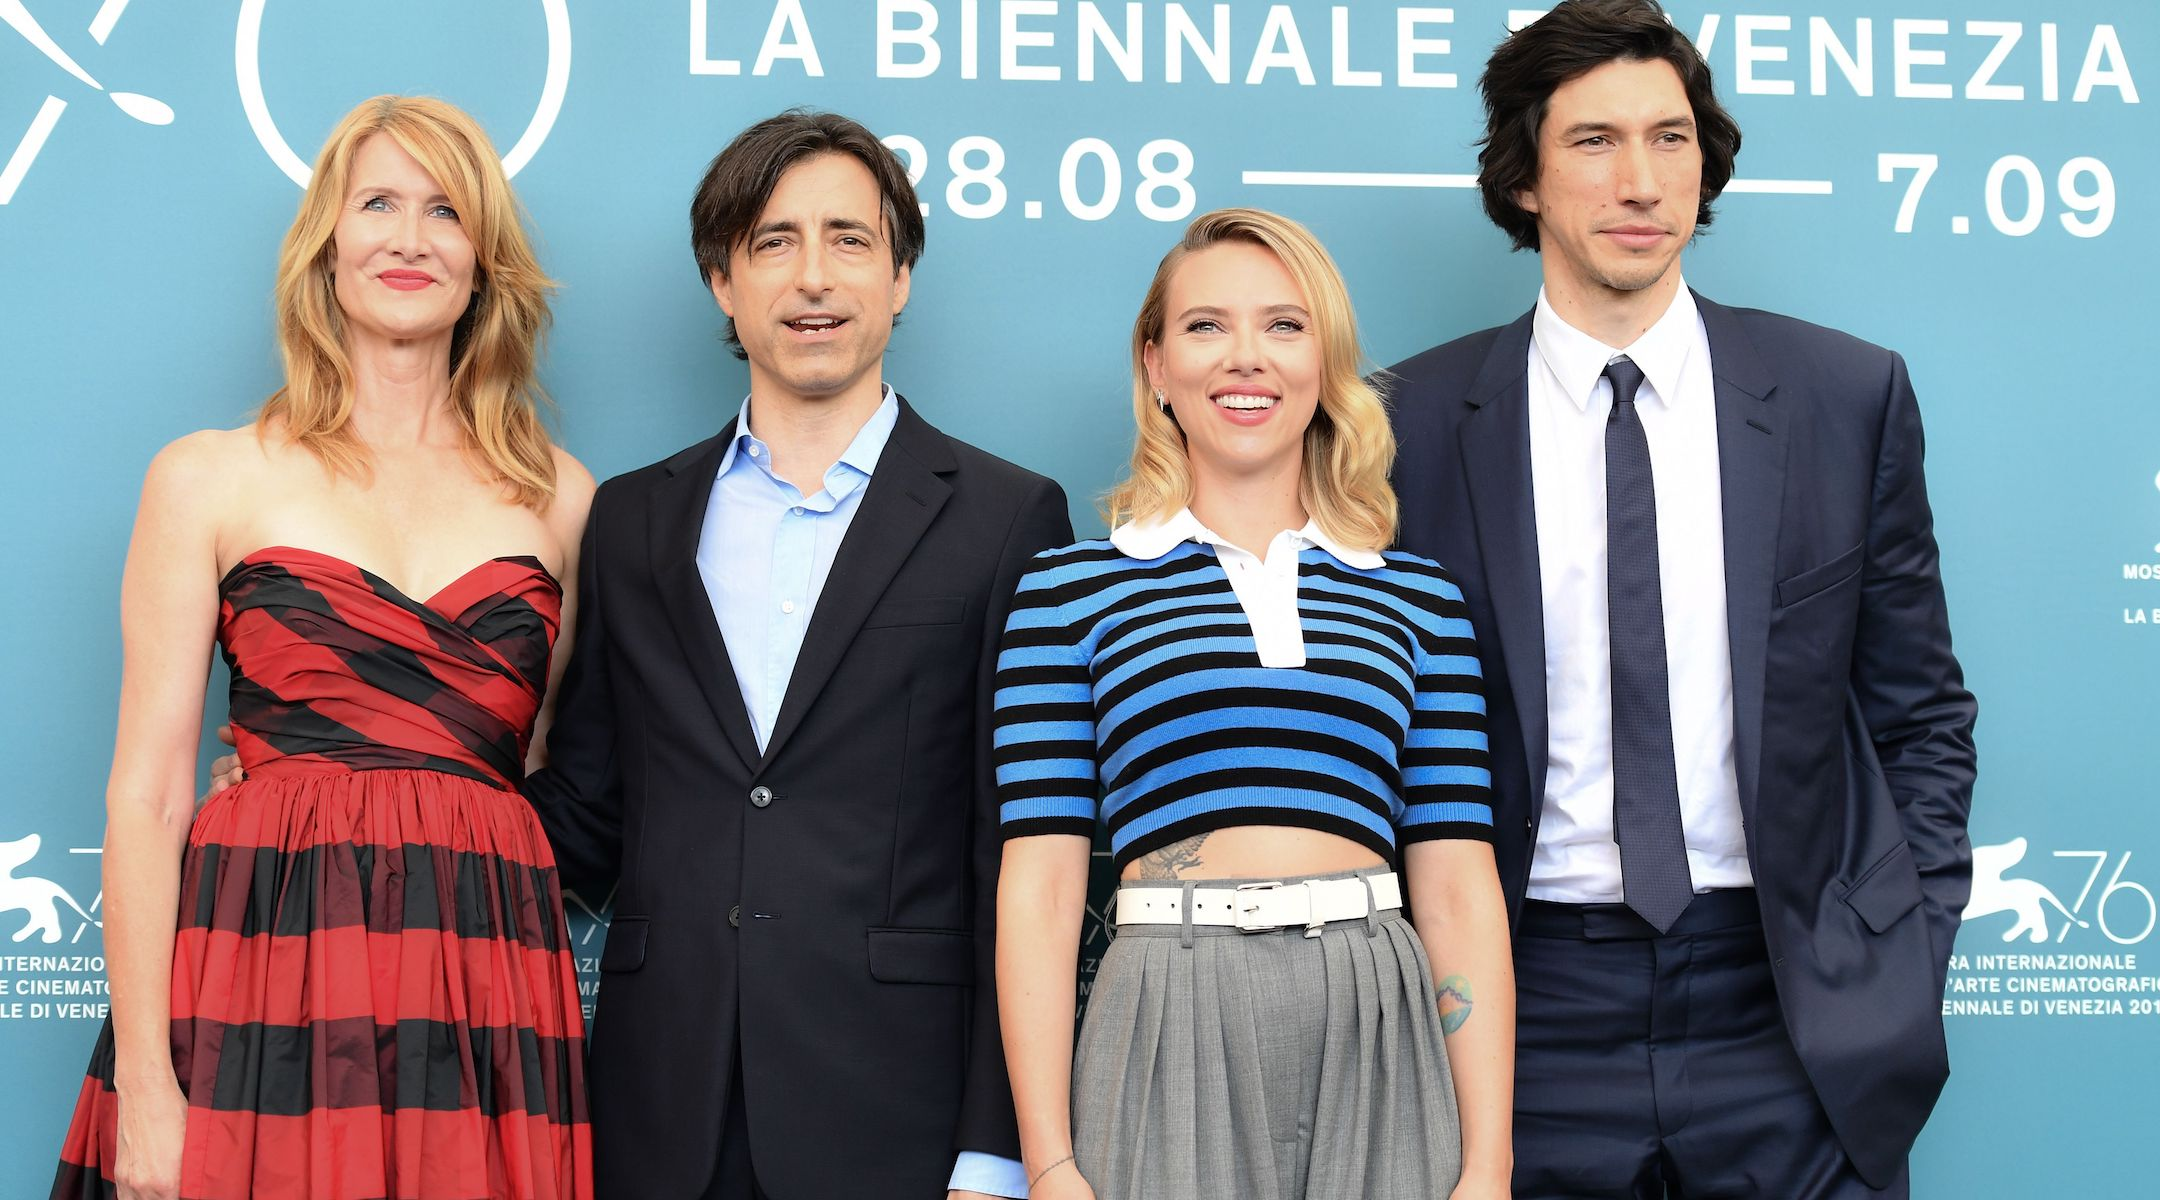 """(From left) Laura Dern, Noah Baumbach, Scarlett Johansson and Adam Driver at the Venice Film Festival for their film """"Marriage Story,"""" Aug. 29, 2019. (JTA/Alberto Pizzoli/AFP via Getty Images)"""